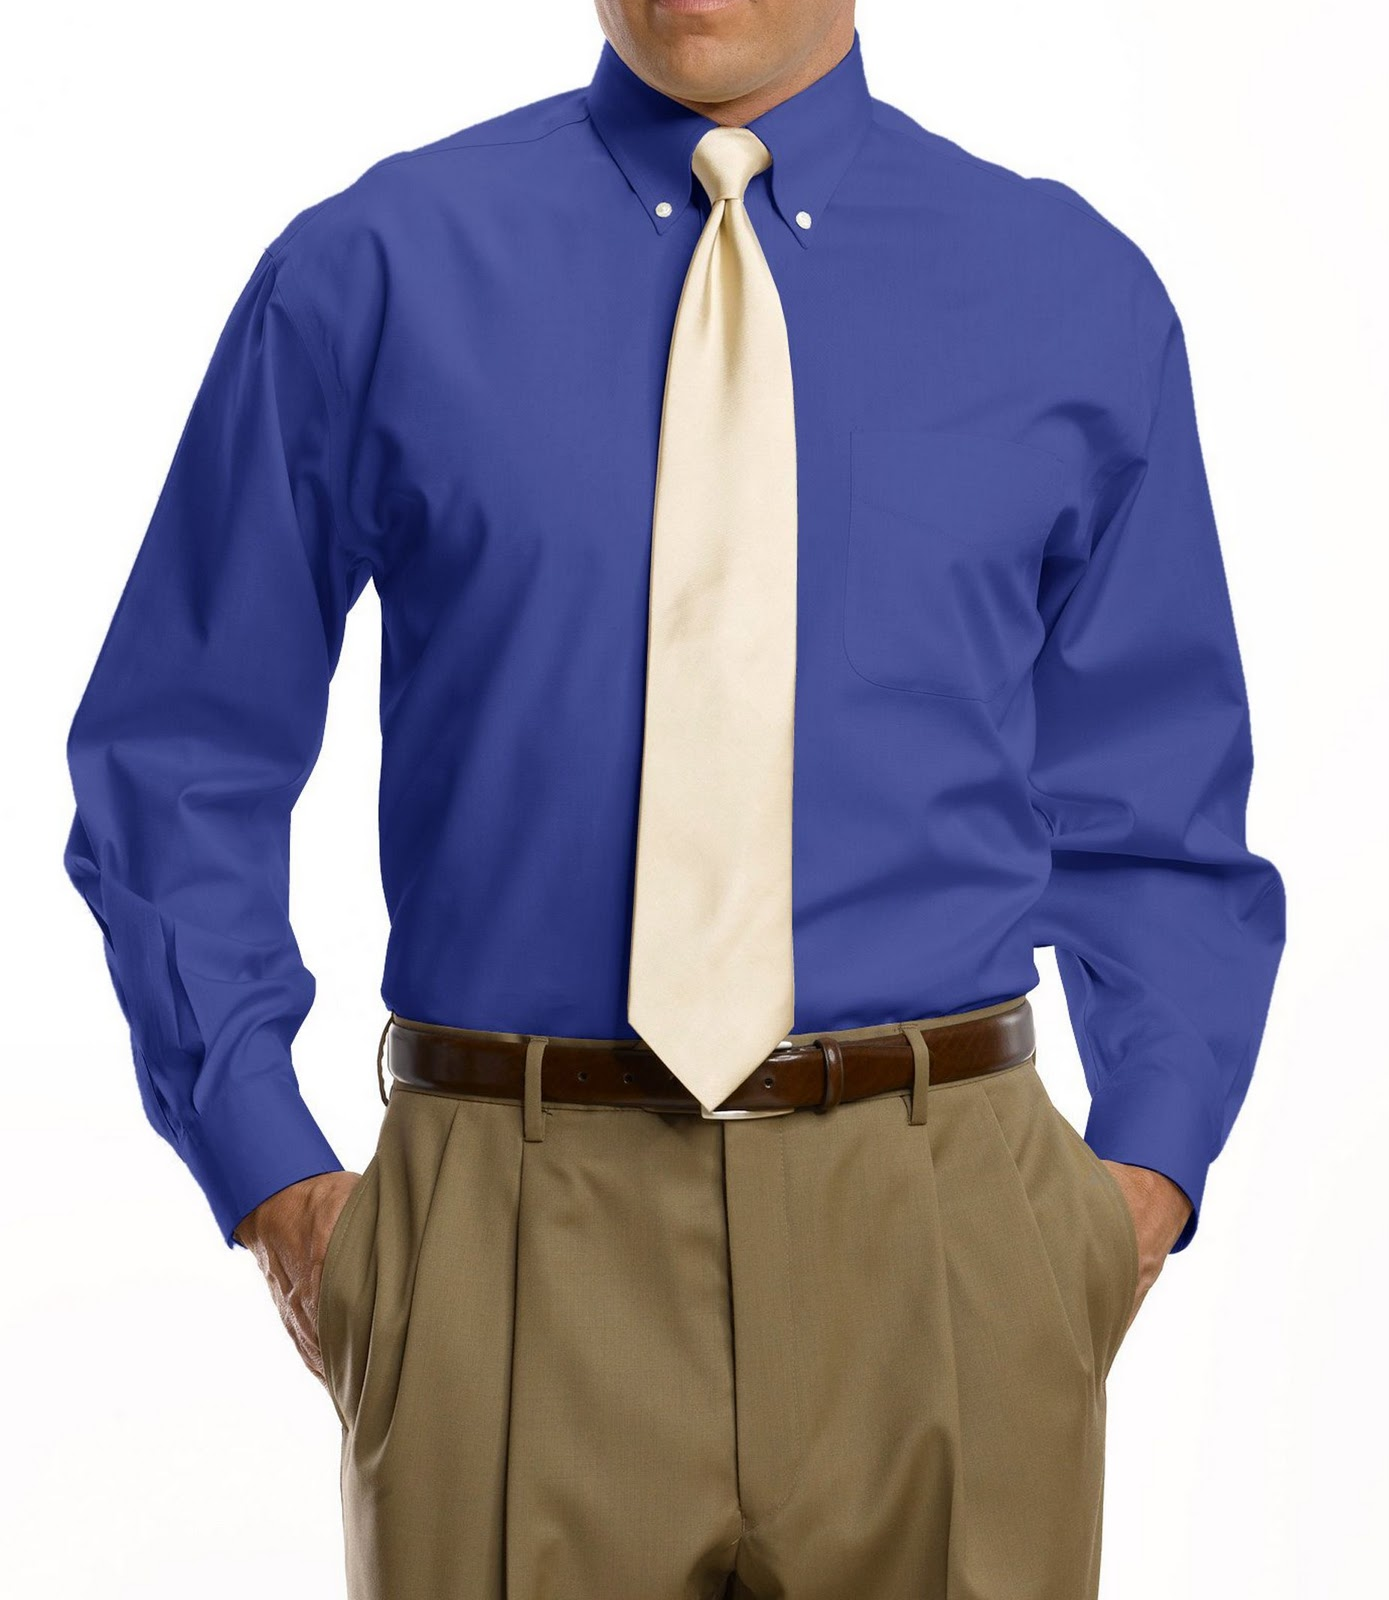 Life And Style How To Use Starch On Mens Dress Shirts